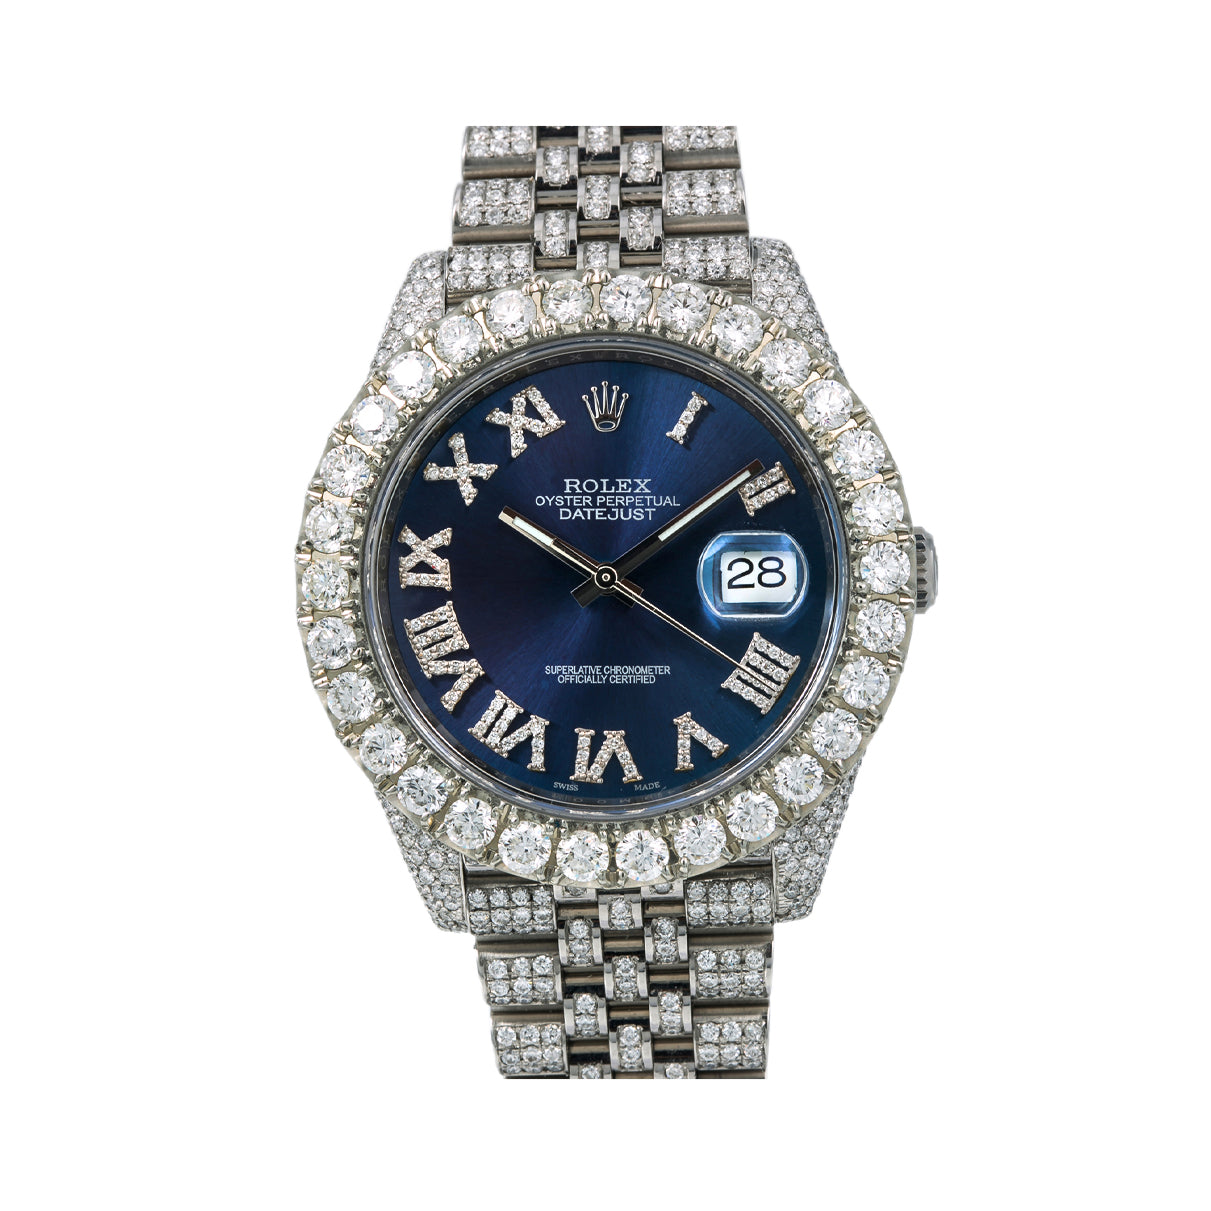 Rolex Datejust 126300 41MM Blue Diamond Dial With Stainless Steel Bracelet